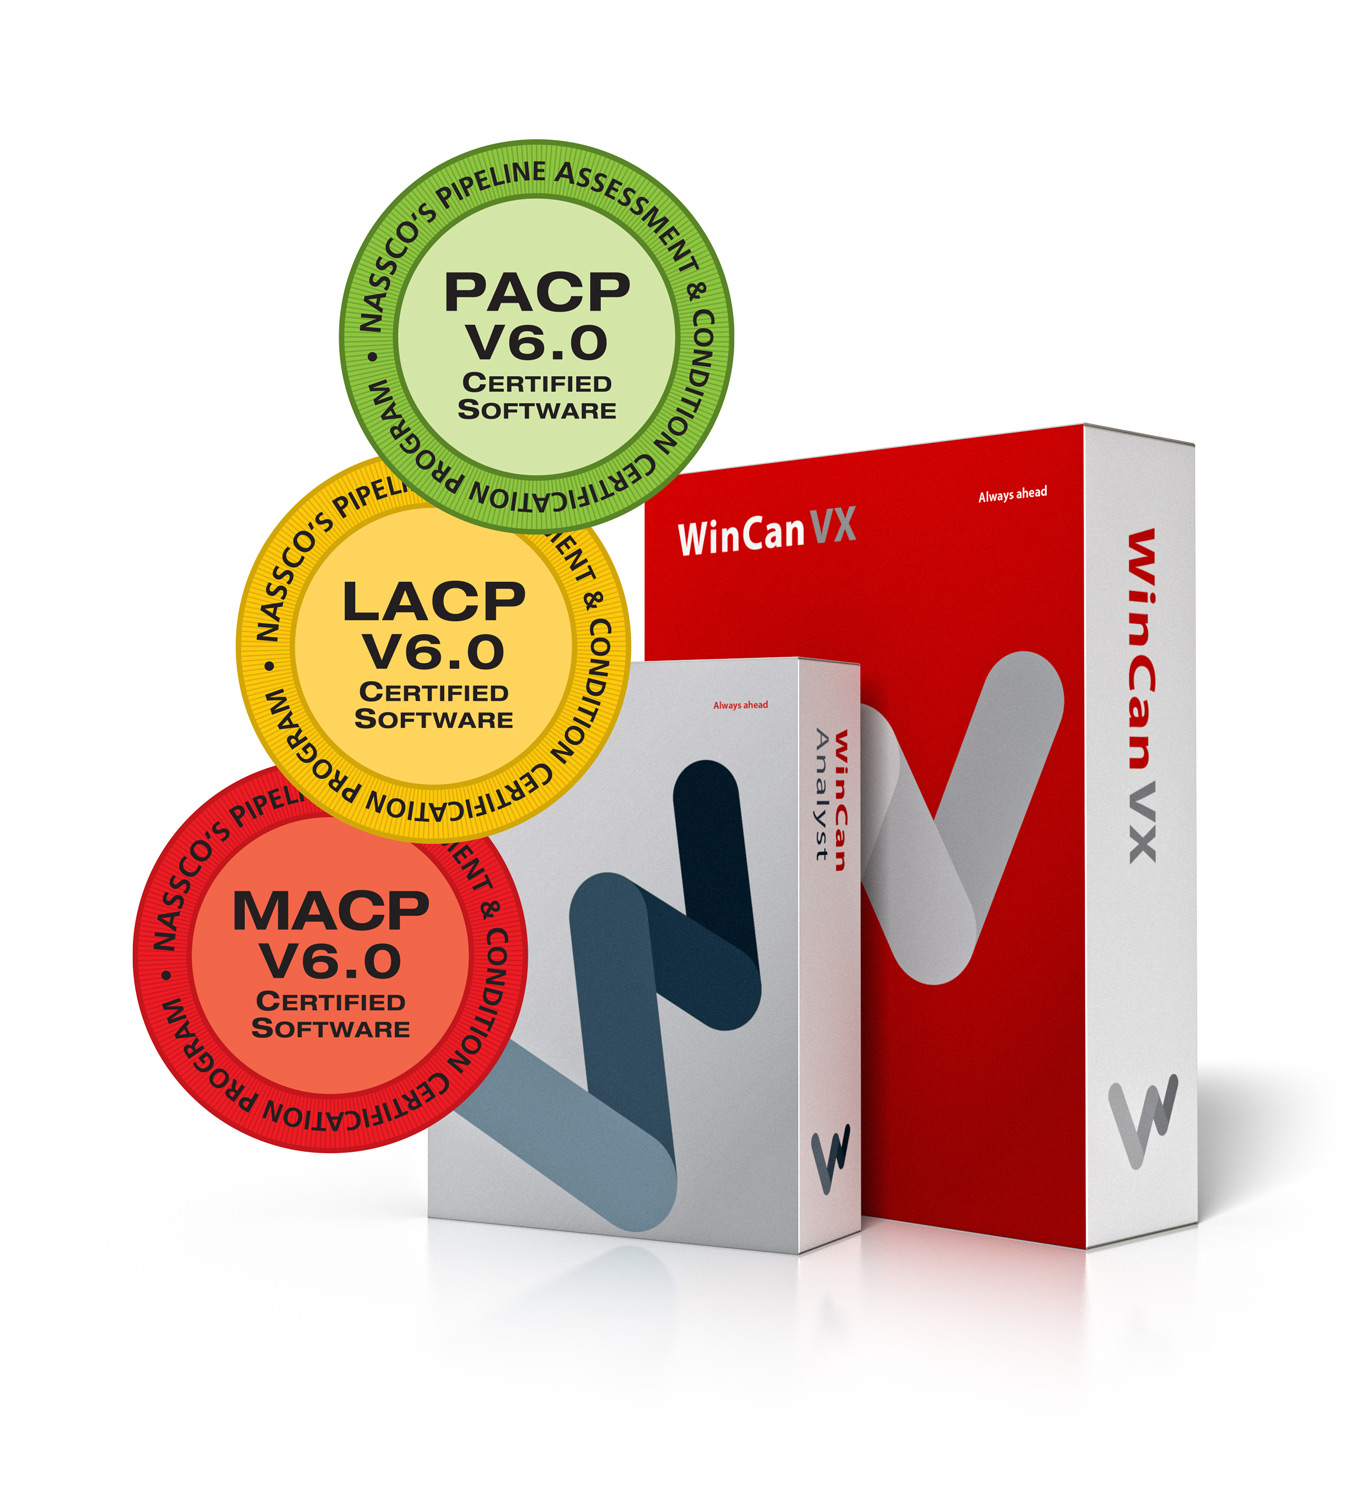 New Wincan Vx Awarded Full Nassco Certification For Pacp Lacp And Macp